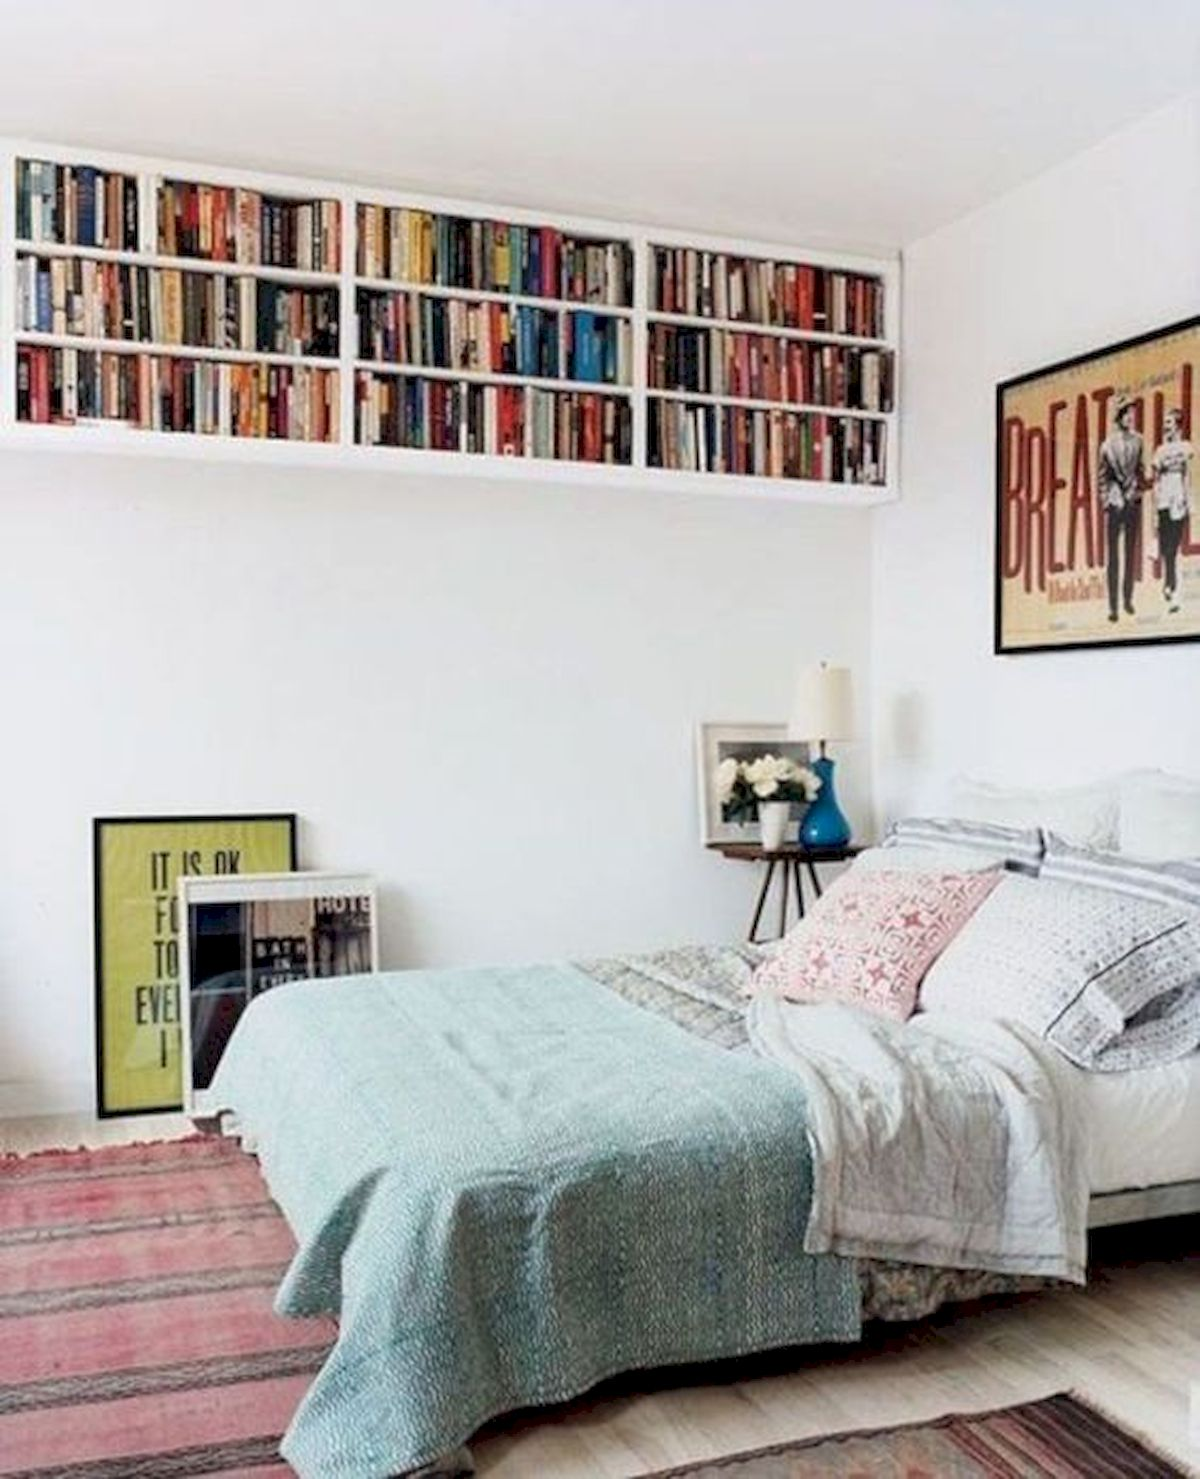 60 Easy and Brilliant DIY Storage Ideas For Small Bedroom (15)